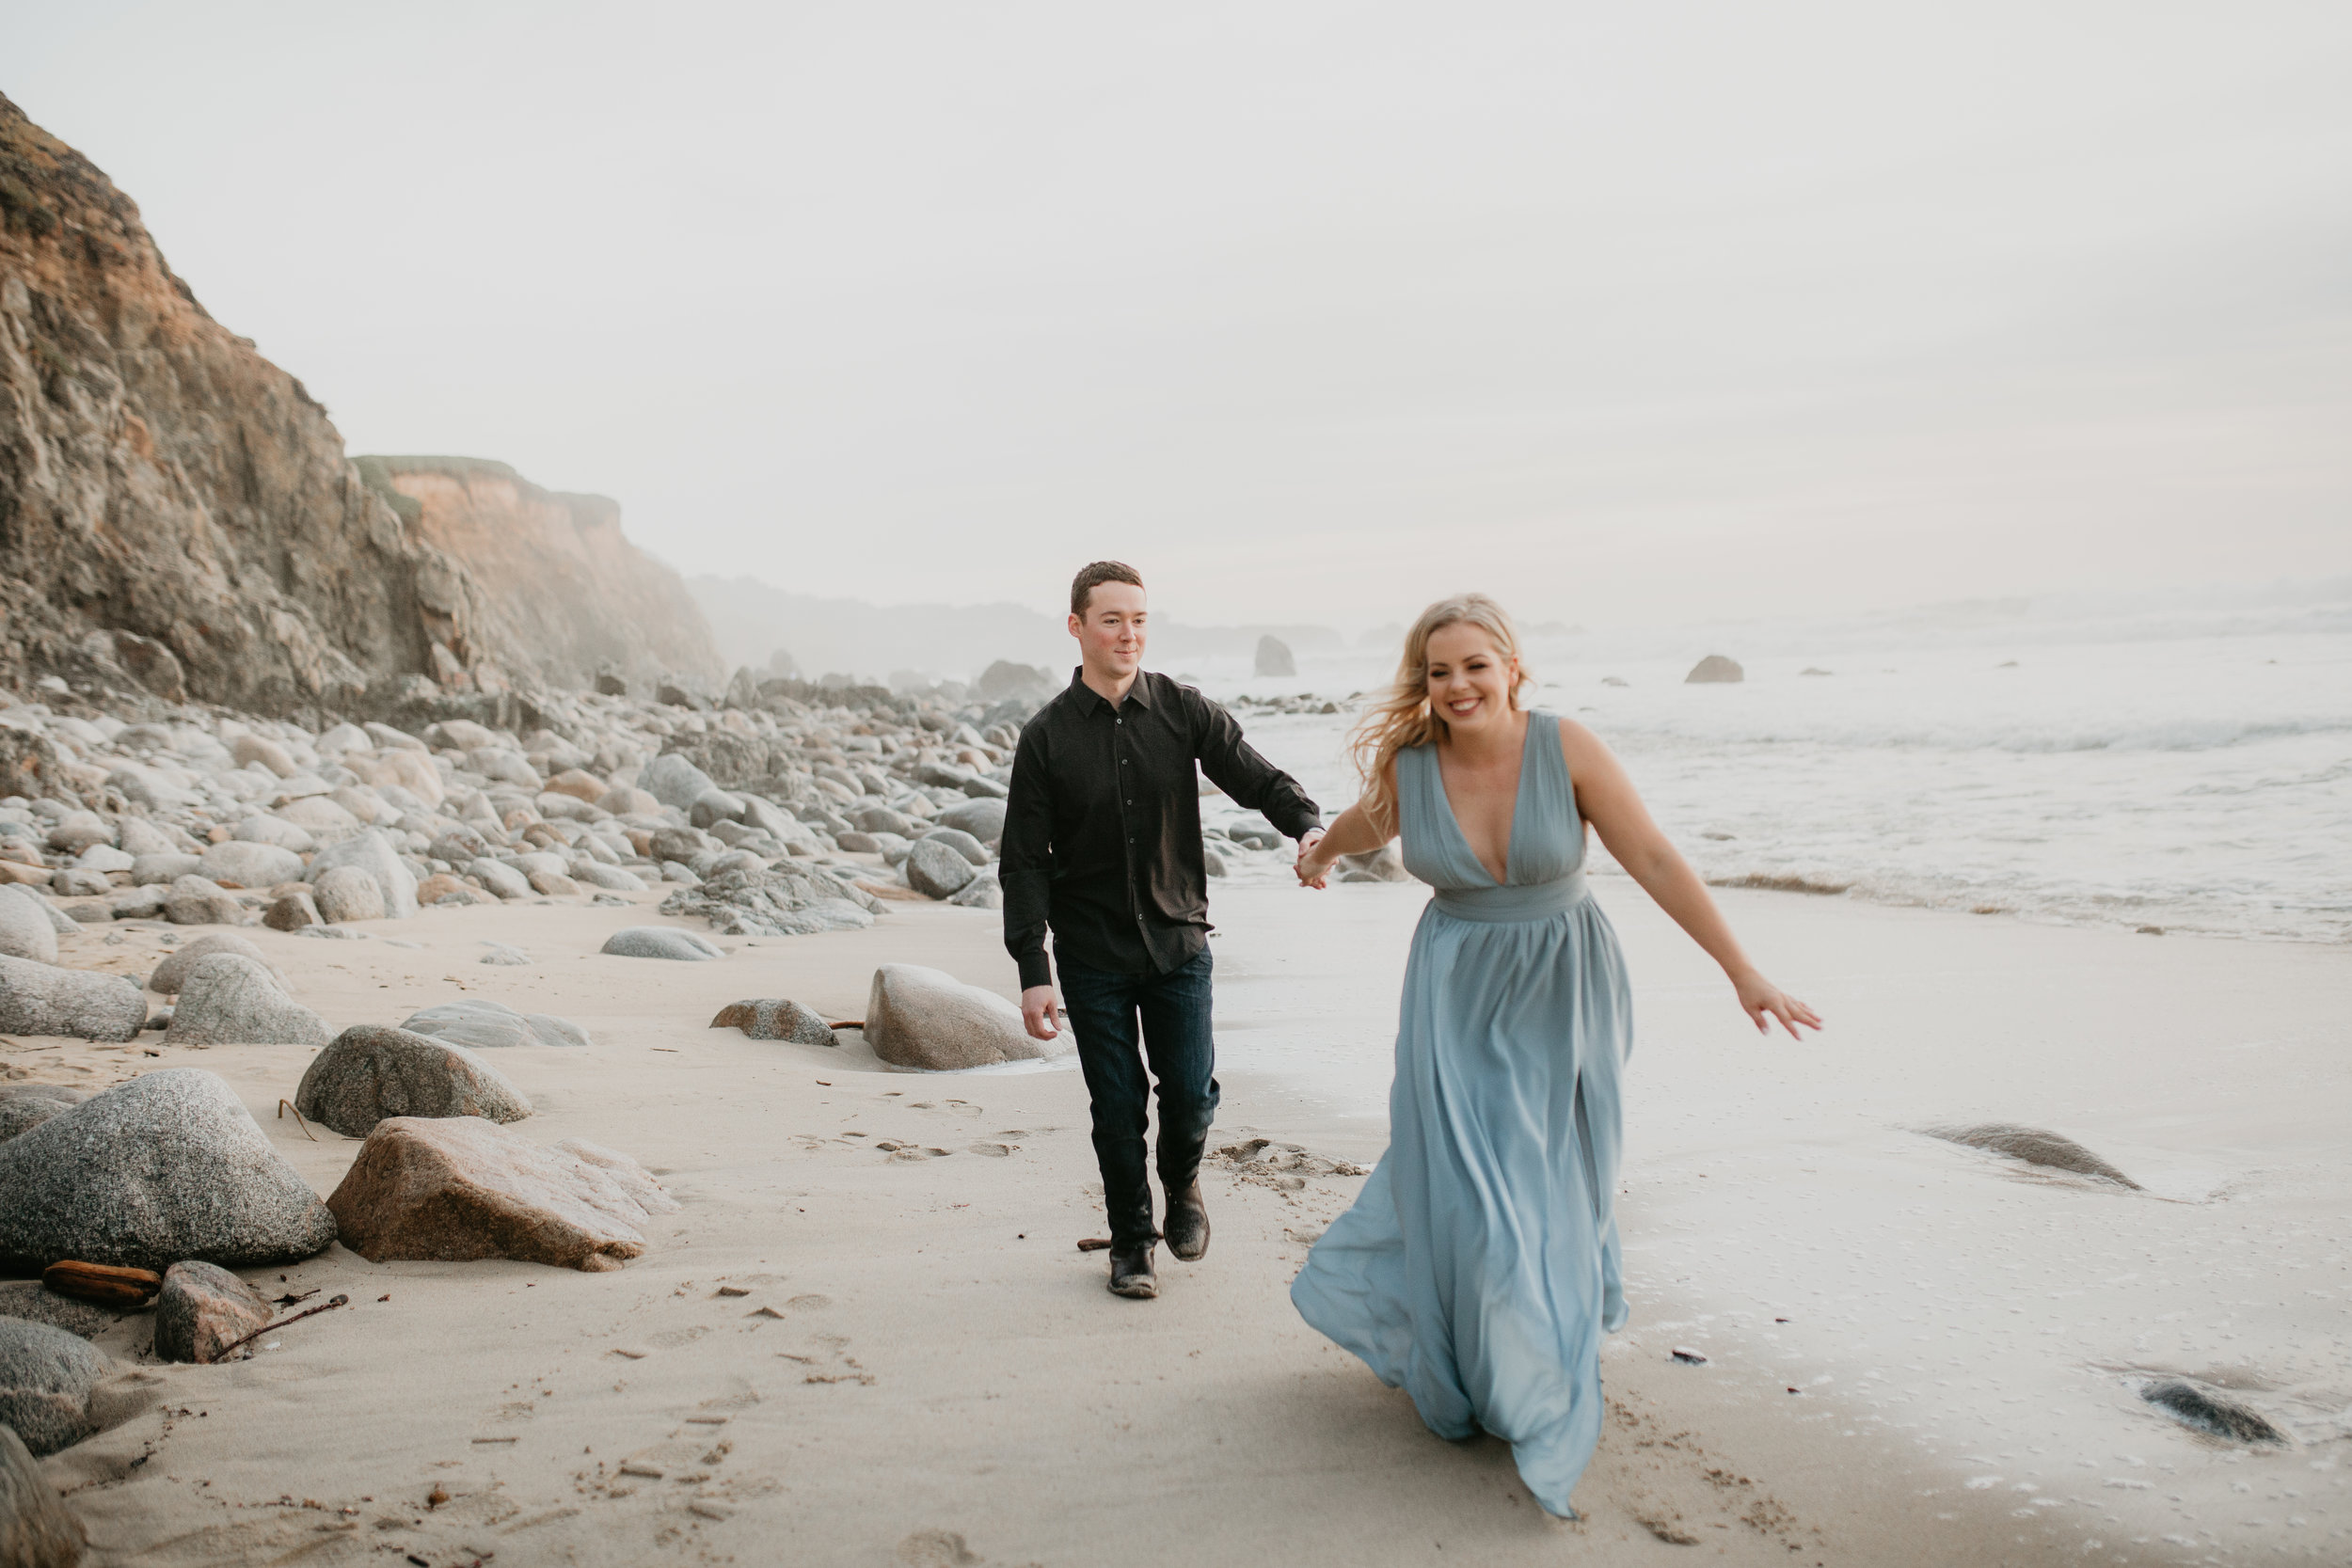 Nicole-Daacke-Photography-big-sur-garrapatta-state-park-adventurous-engagement-session-bixy-bridge-elopement-big-sur-wedding-photographer-monterey-elopement-photographer-california-golden-sunset-coast-photos-49.jpg